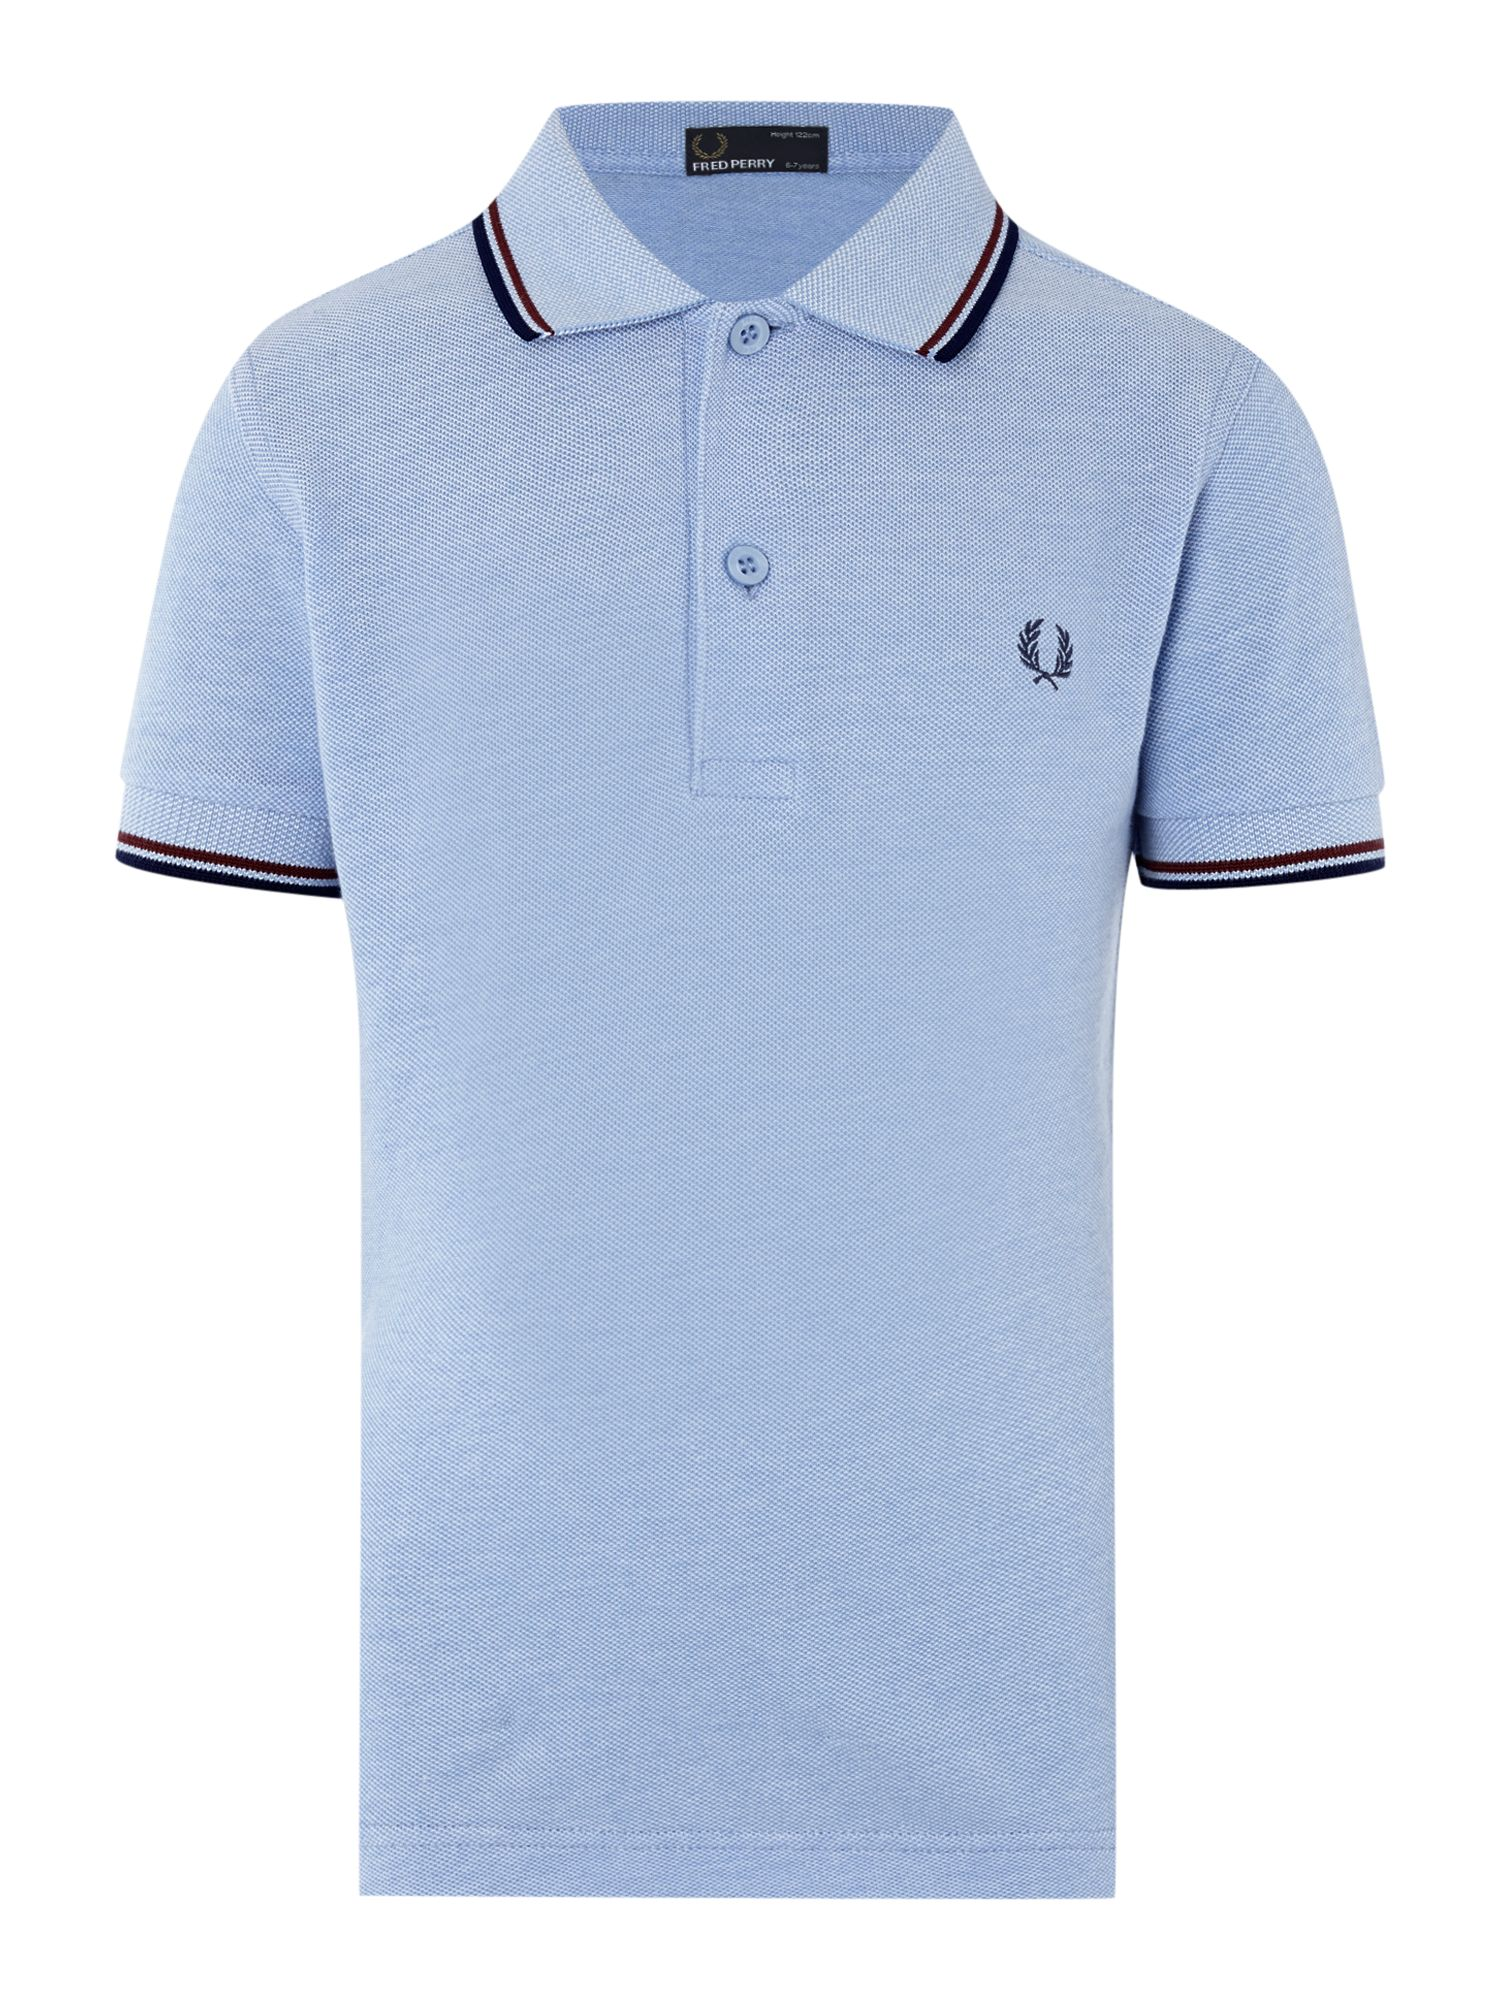 Fred Perry Boys Twin Tipped Classic Polo Shirt Light Blue